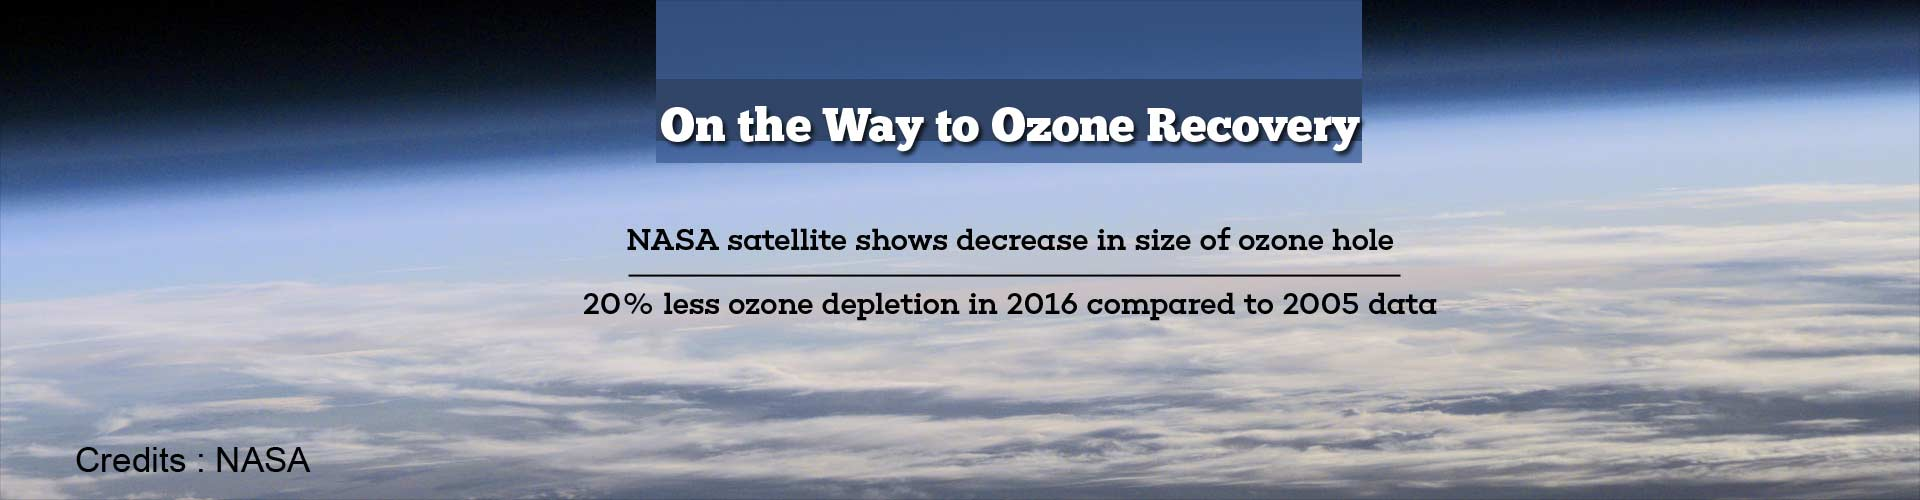 On the way to Ozone Recovery